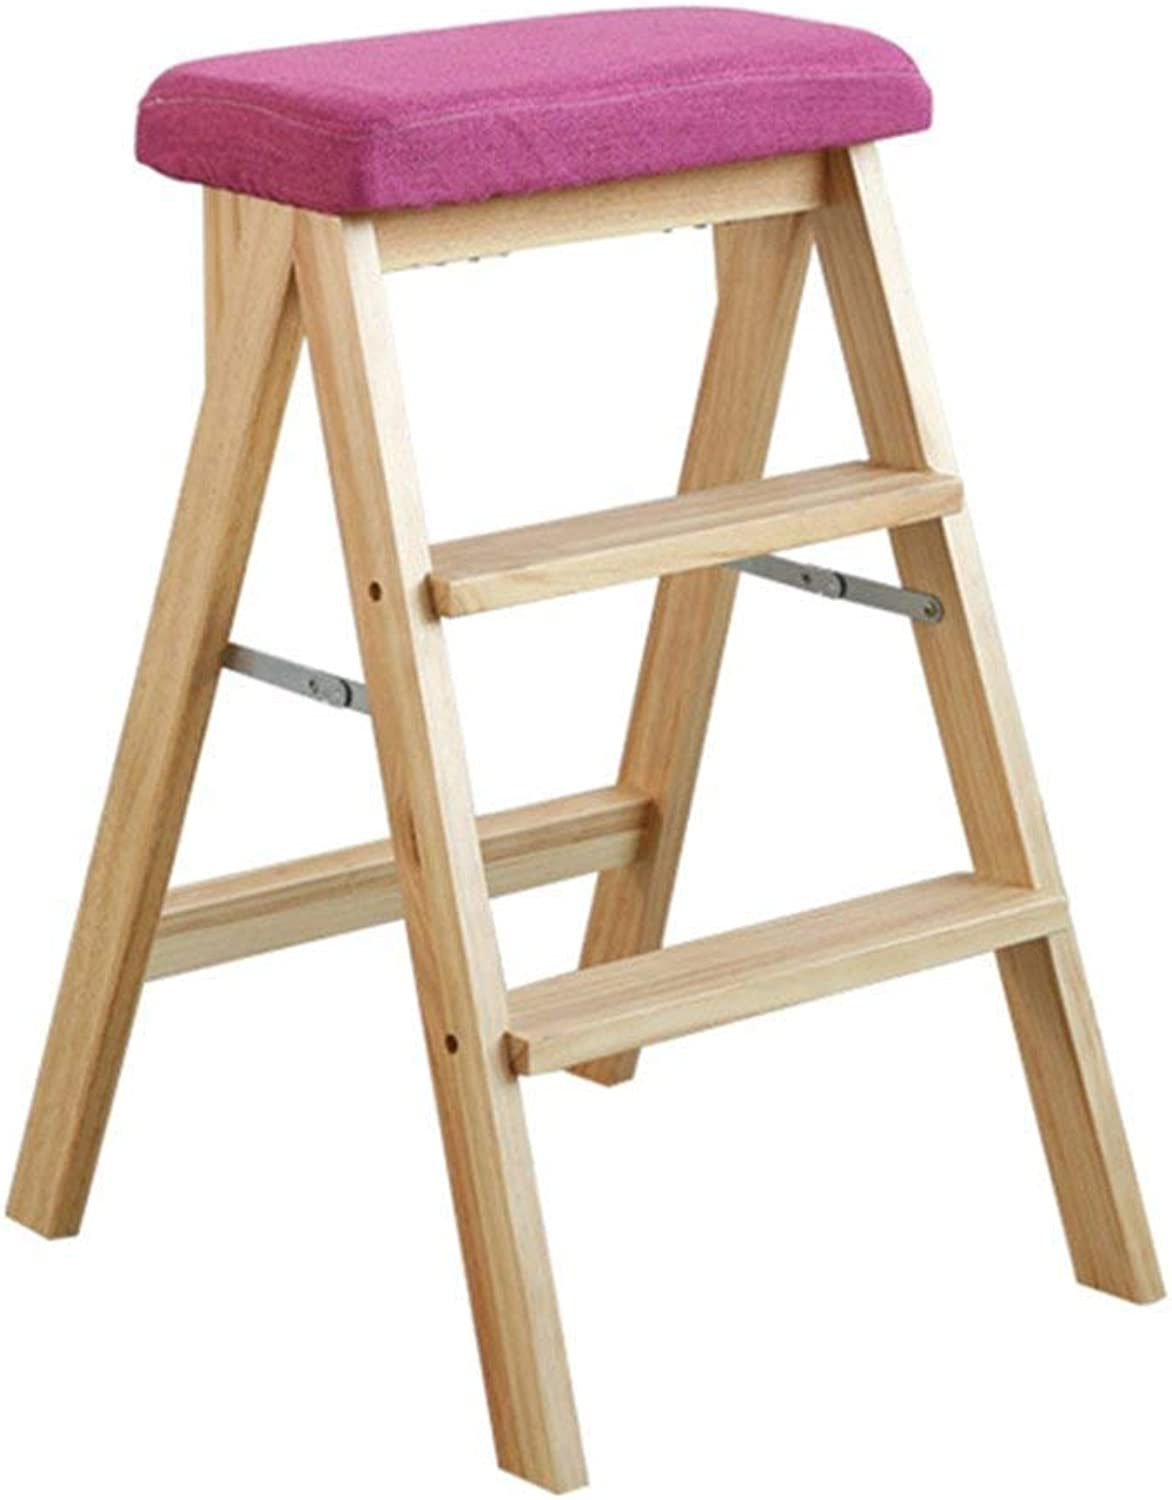 D-Z Chair Stool Portable Stool Kitchen Foot Stool Step Stool Folding Ladder Chair Solid Wood Folding Step Stool, Stool 2, a